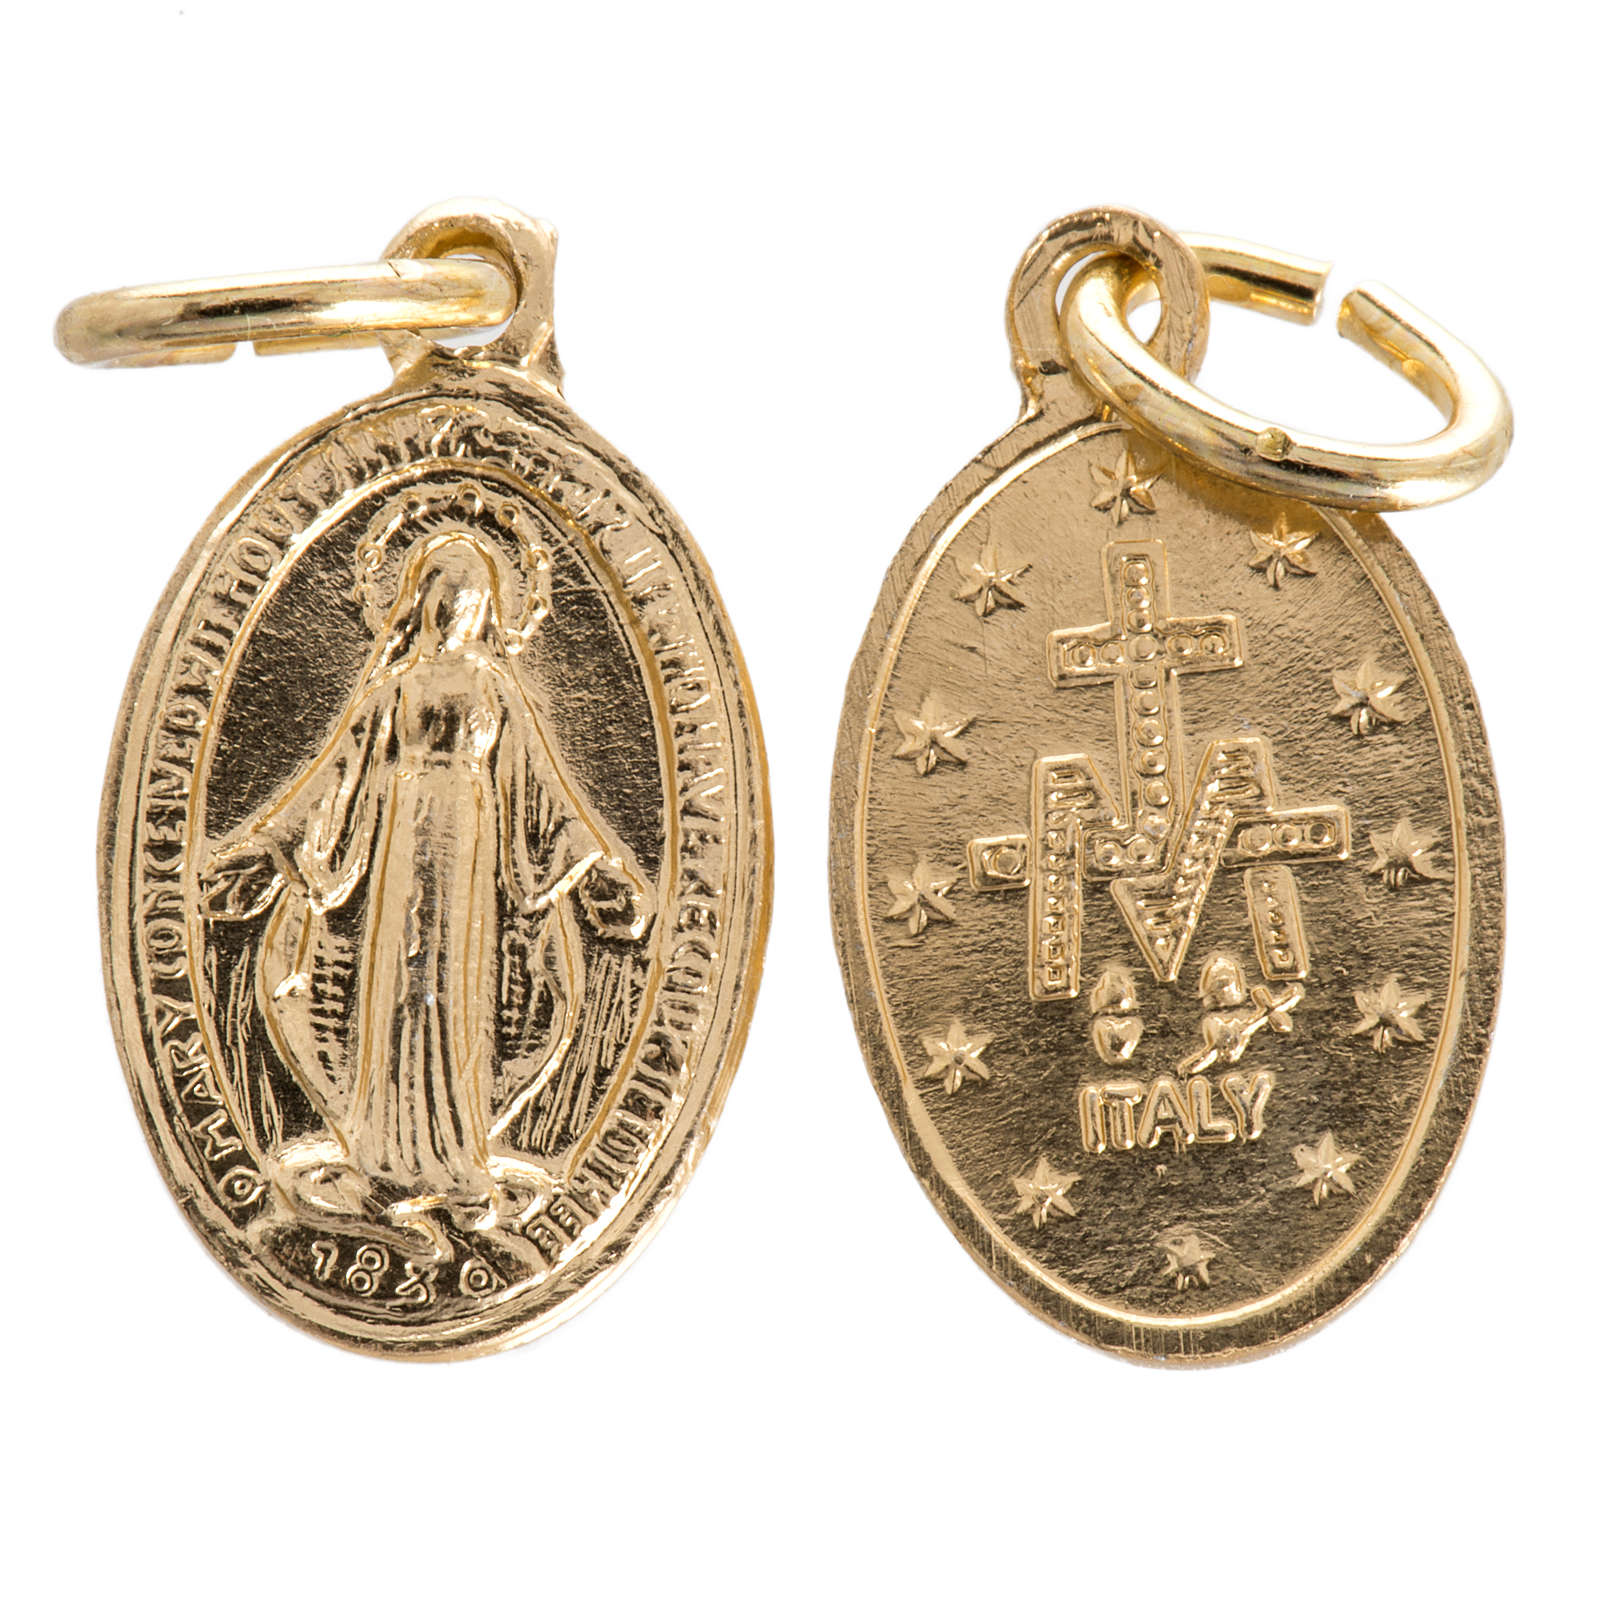 Miraculous Medal in gilded steel 15mm 4